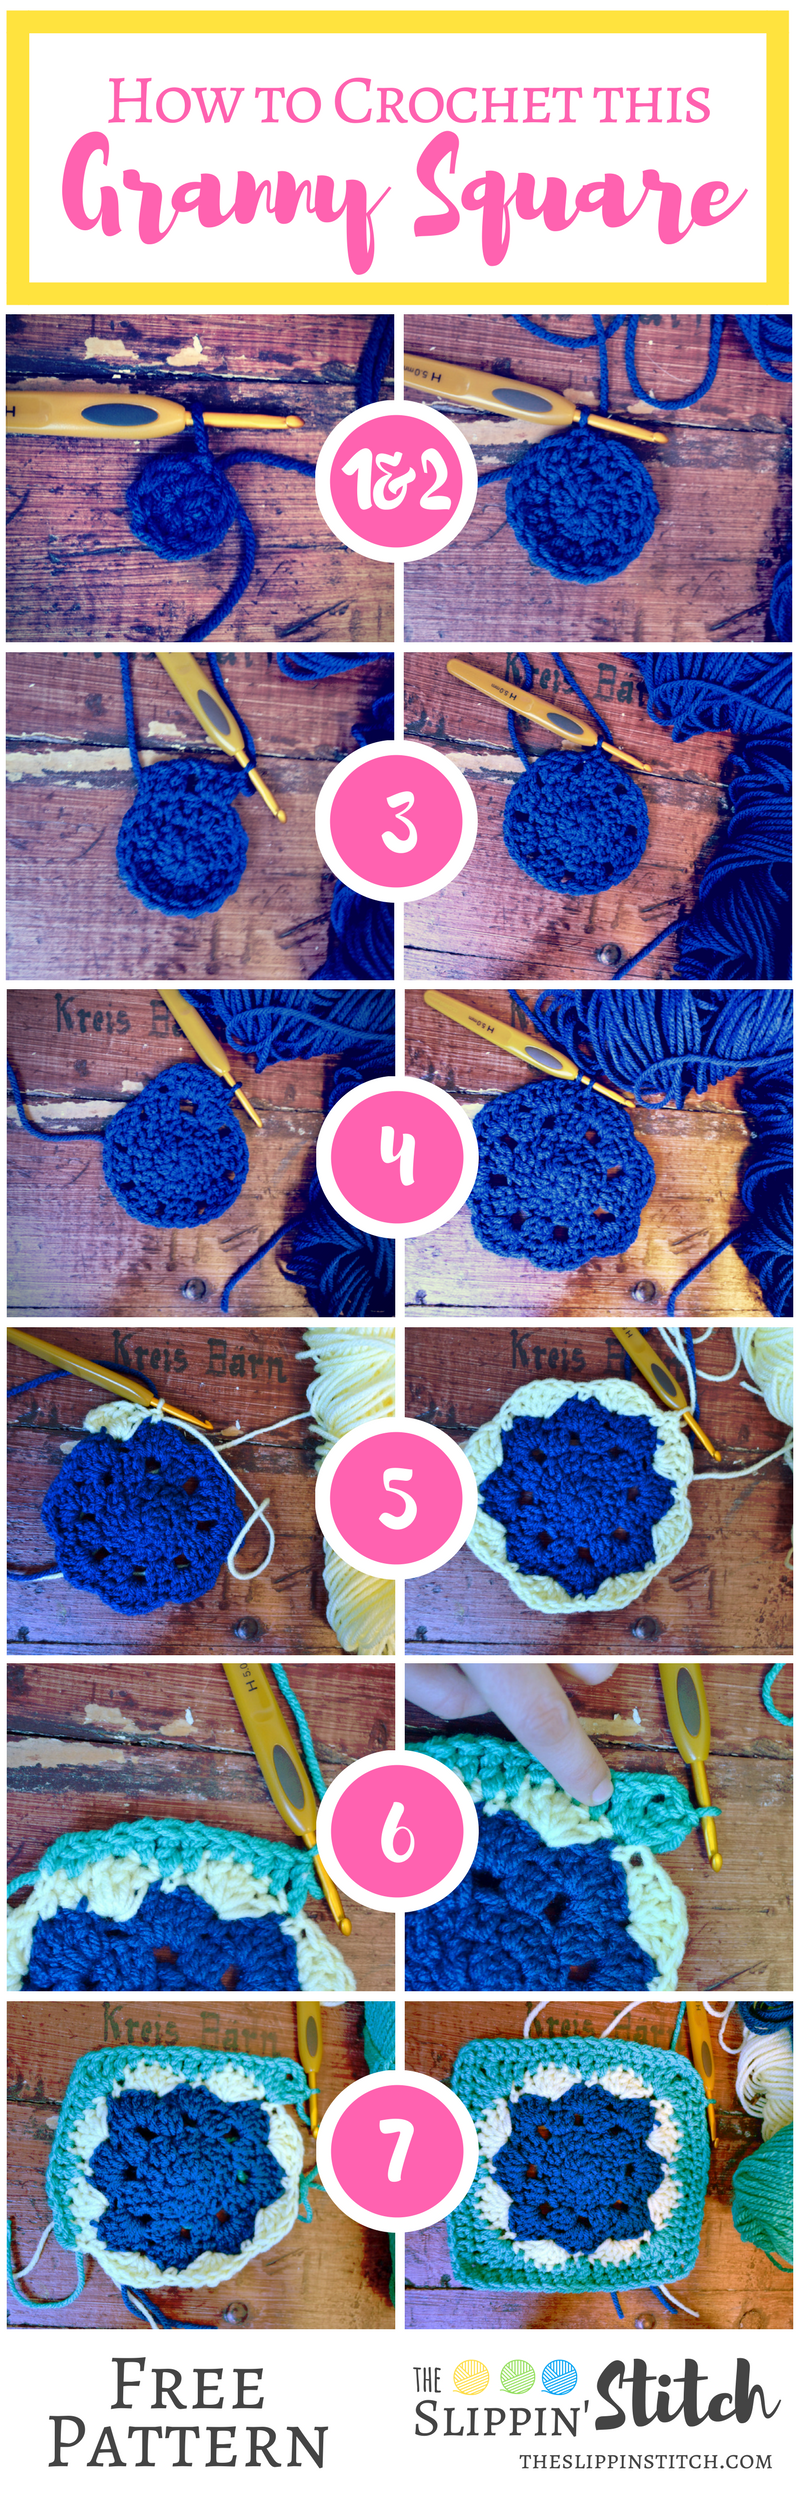 step by step visual instructions for granny square crochet pattern